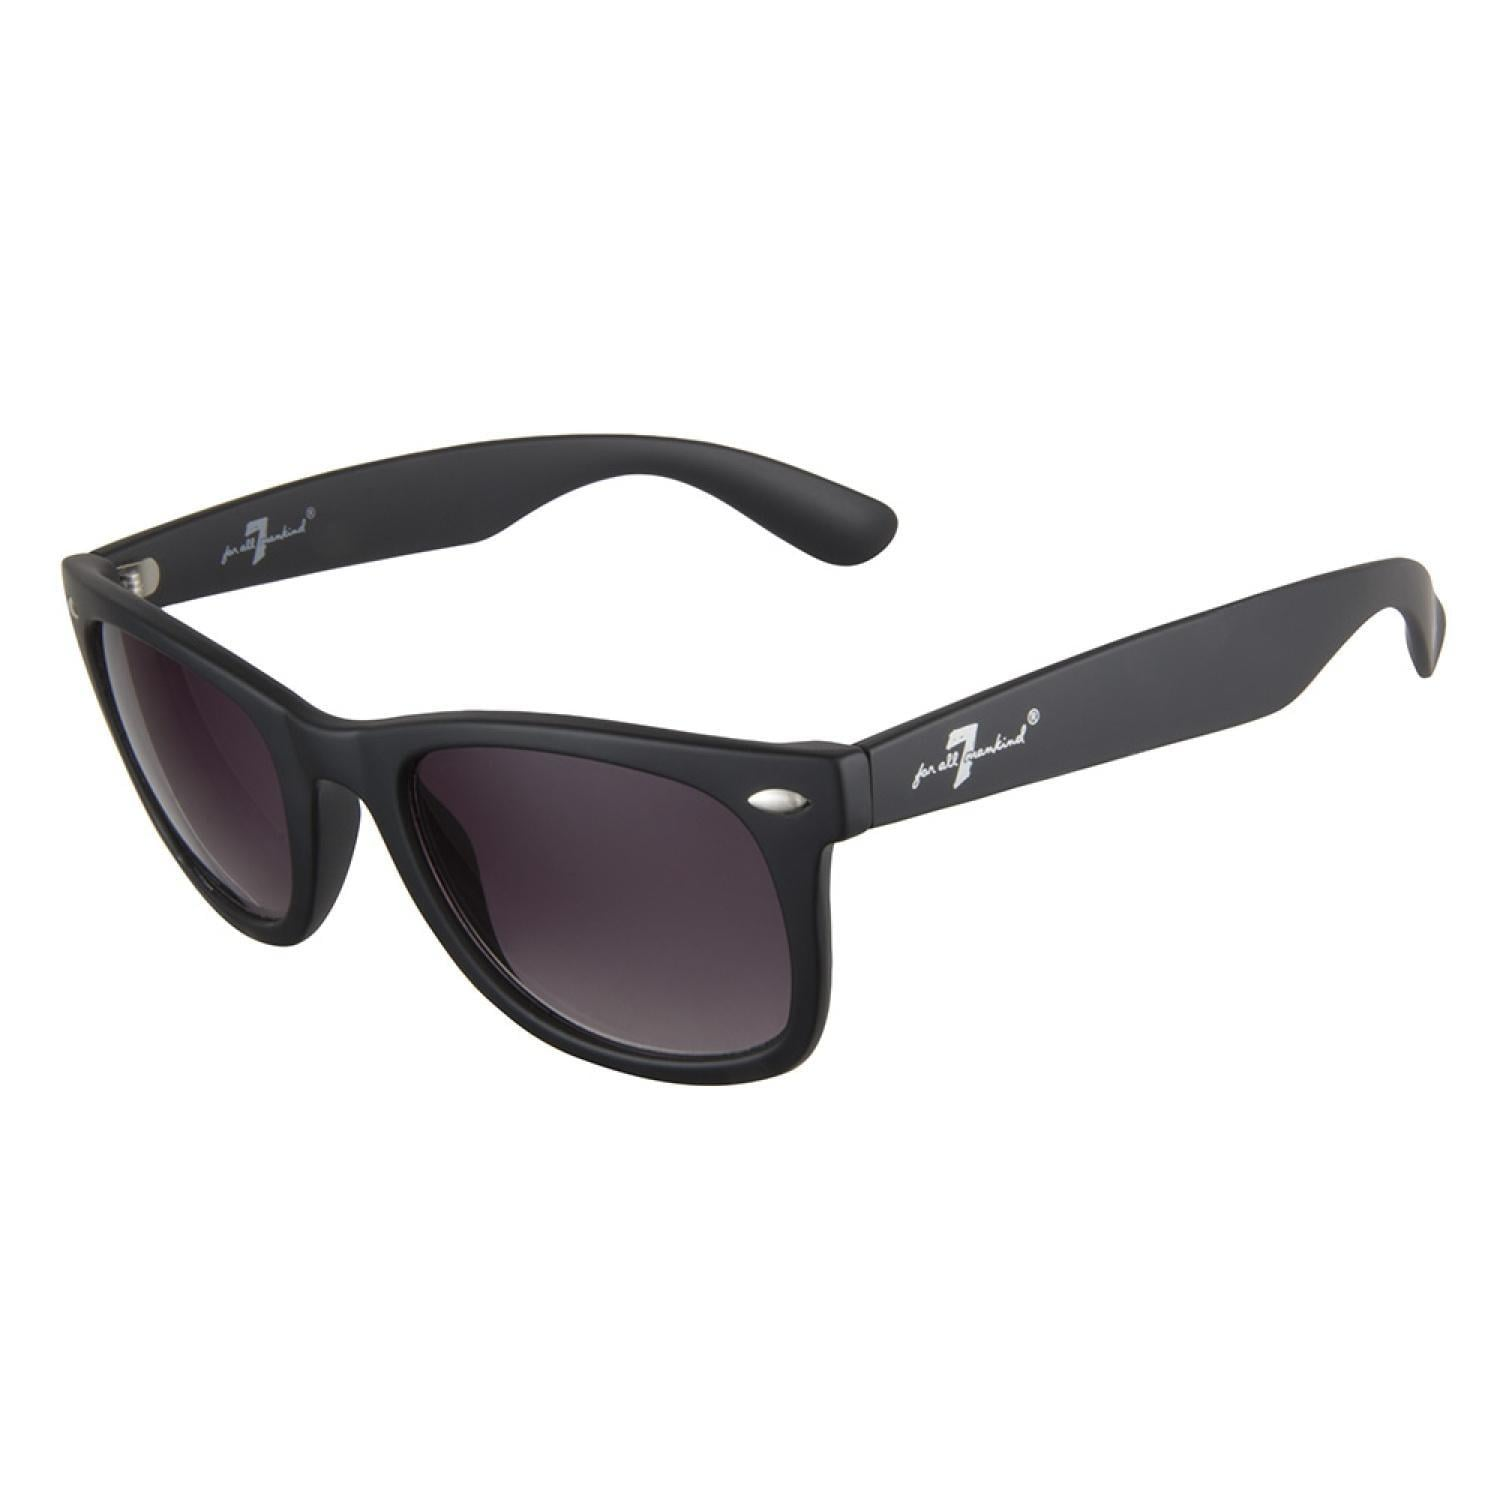 Seven For All Mankind Sunglasses  7 for all mankind echo jet sunglasses free shipping today